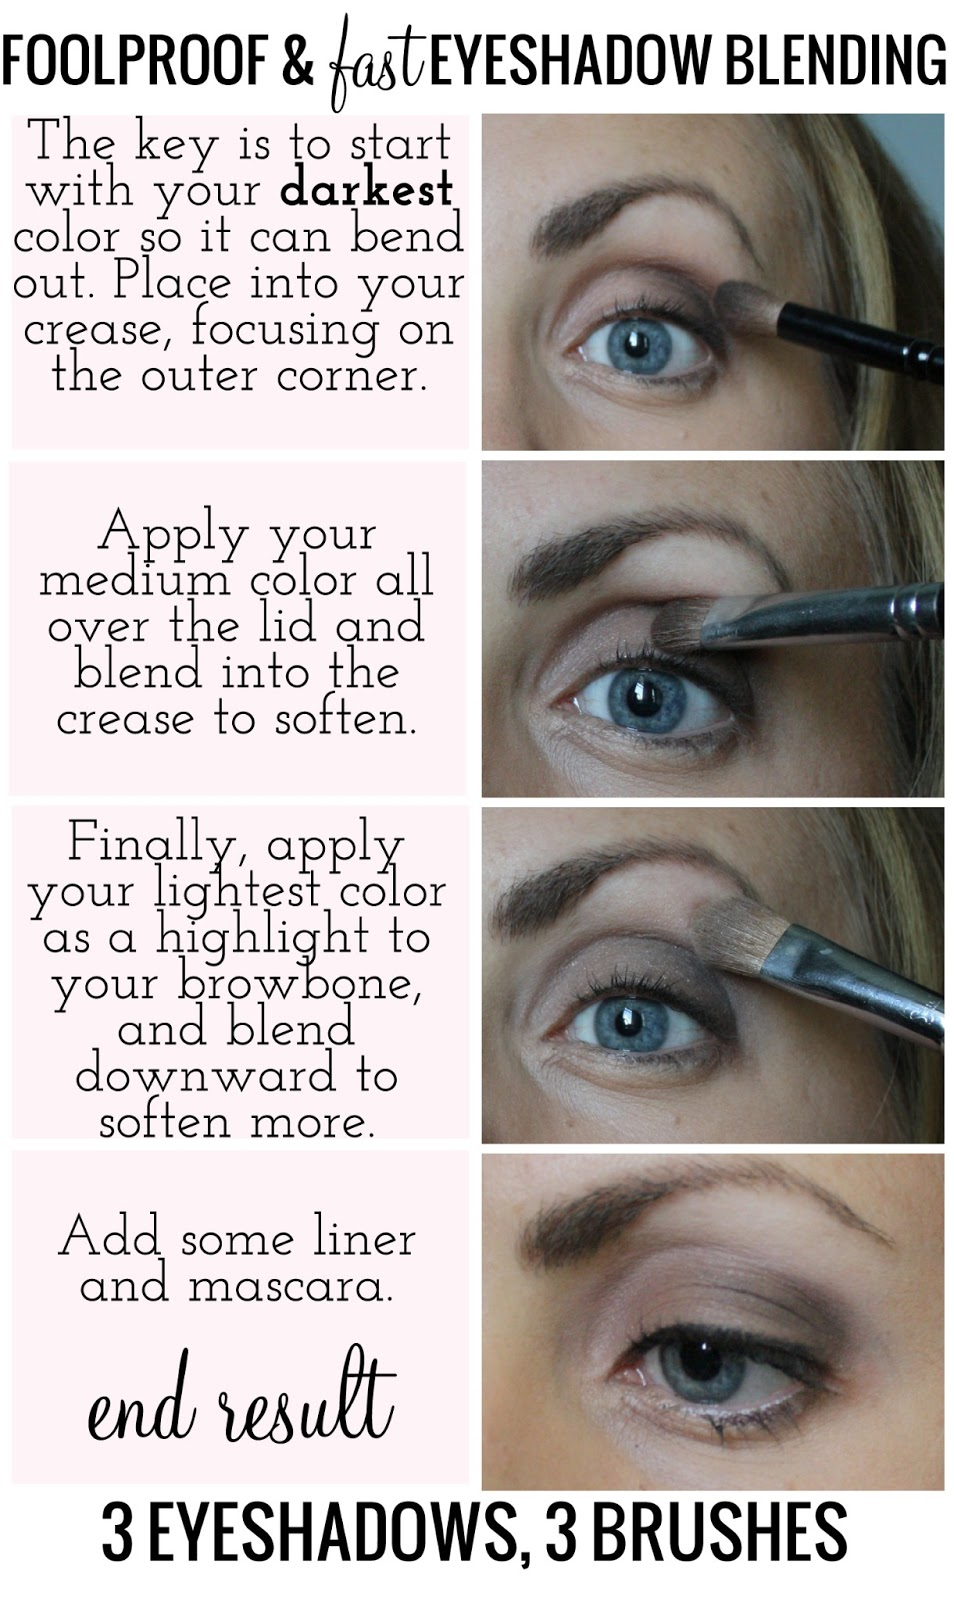 The Key Is To Start With Your Darkest Color So It Can Bend Out Place